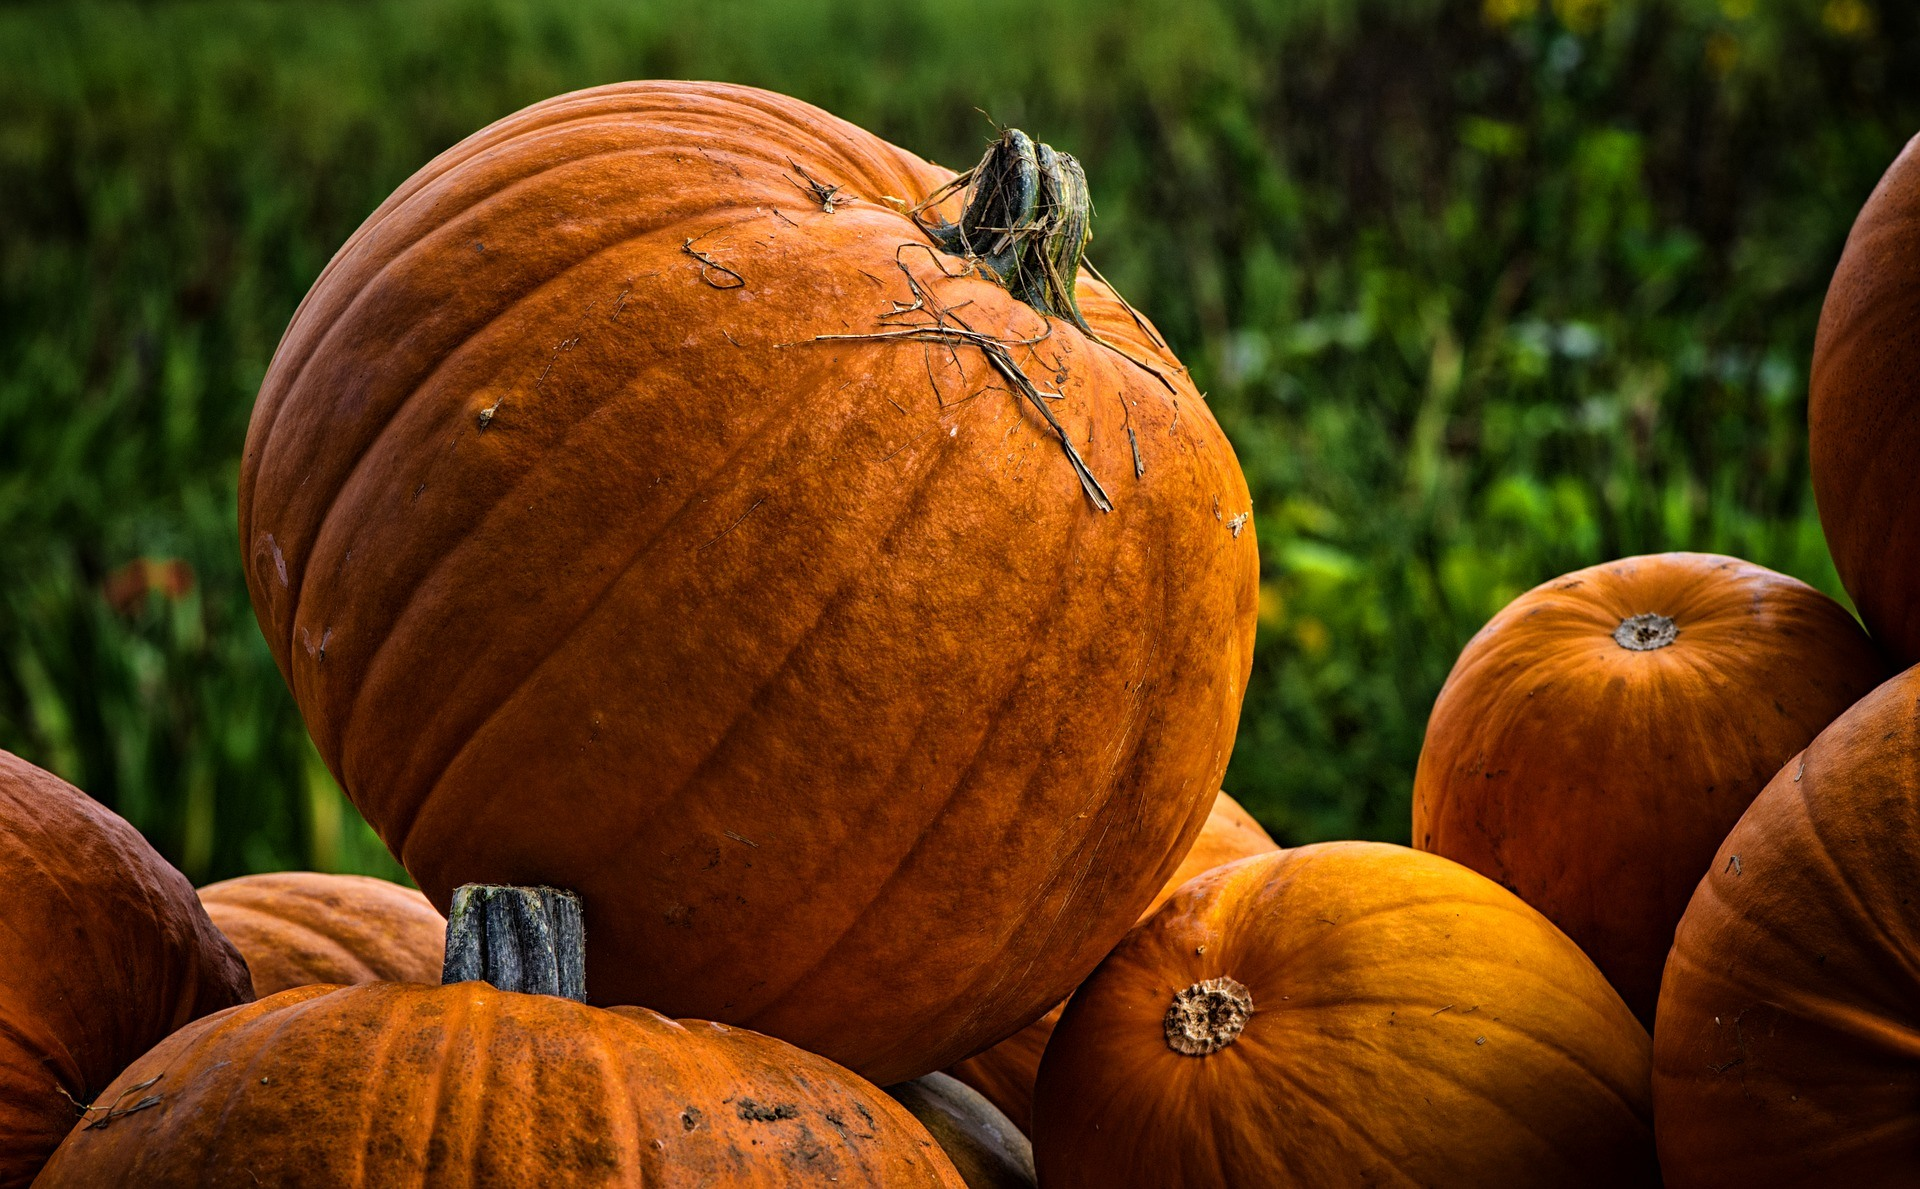 A Spooktacular Pumpkin Soup Recipe from Suffolk's Foodie Town